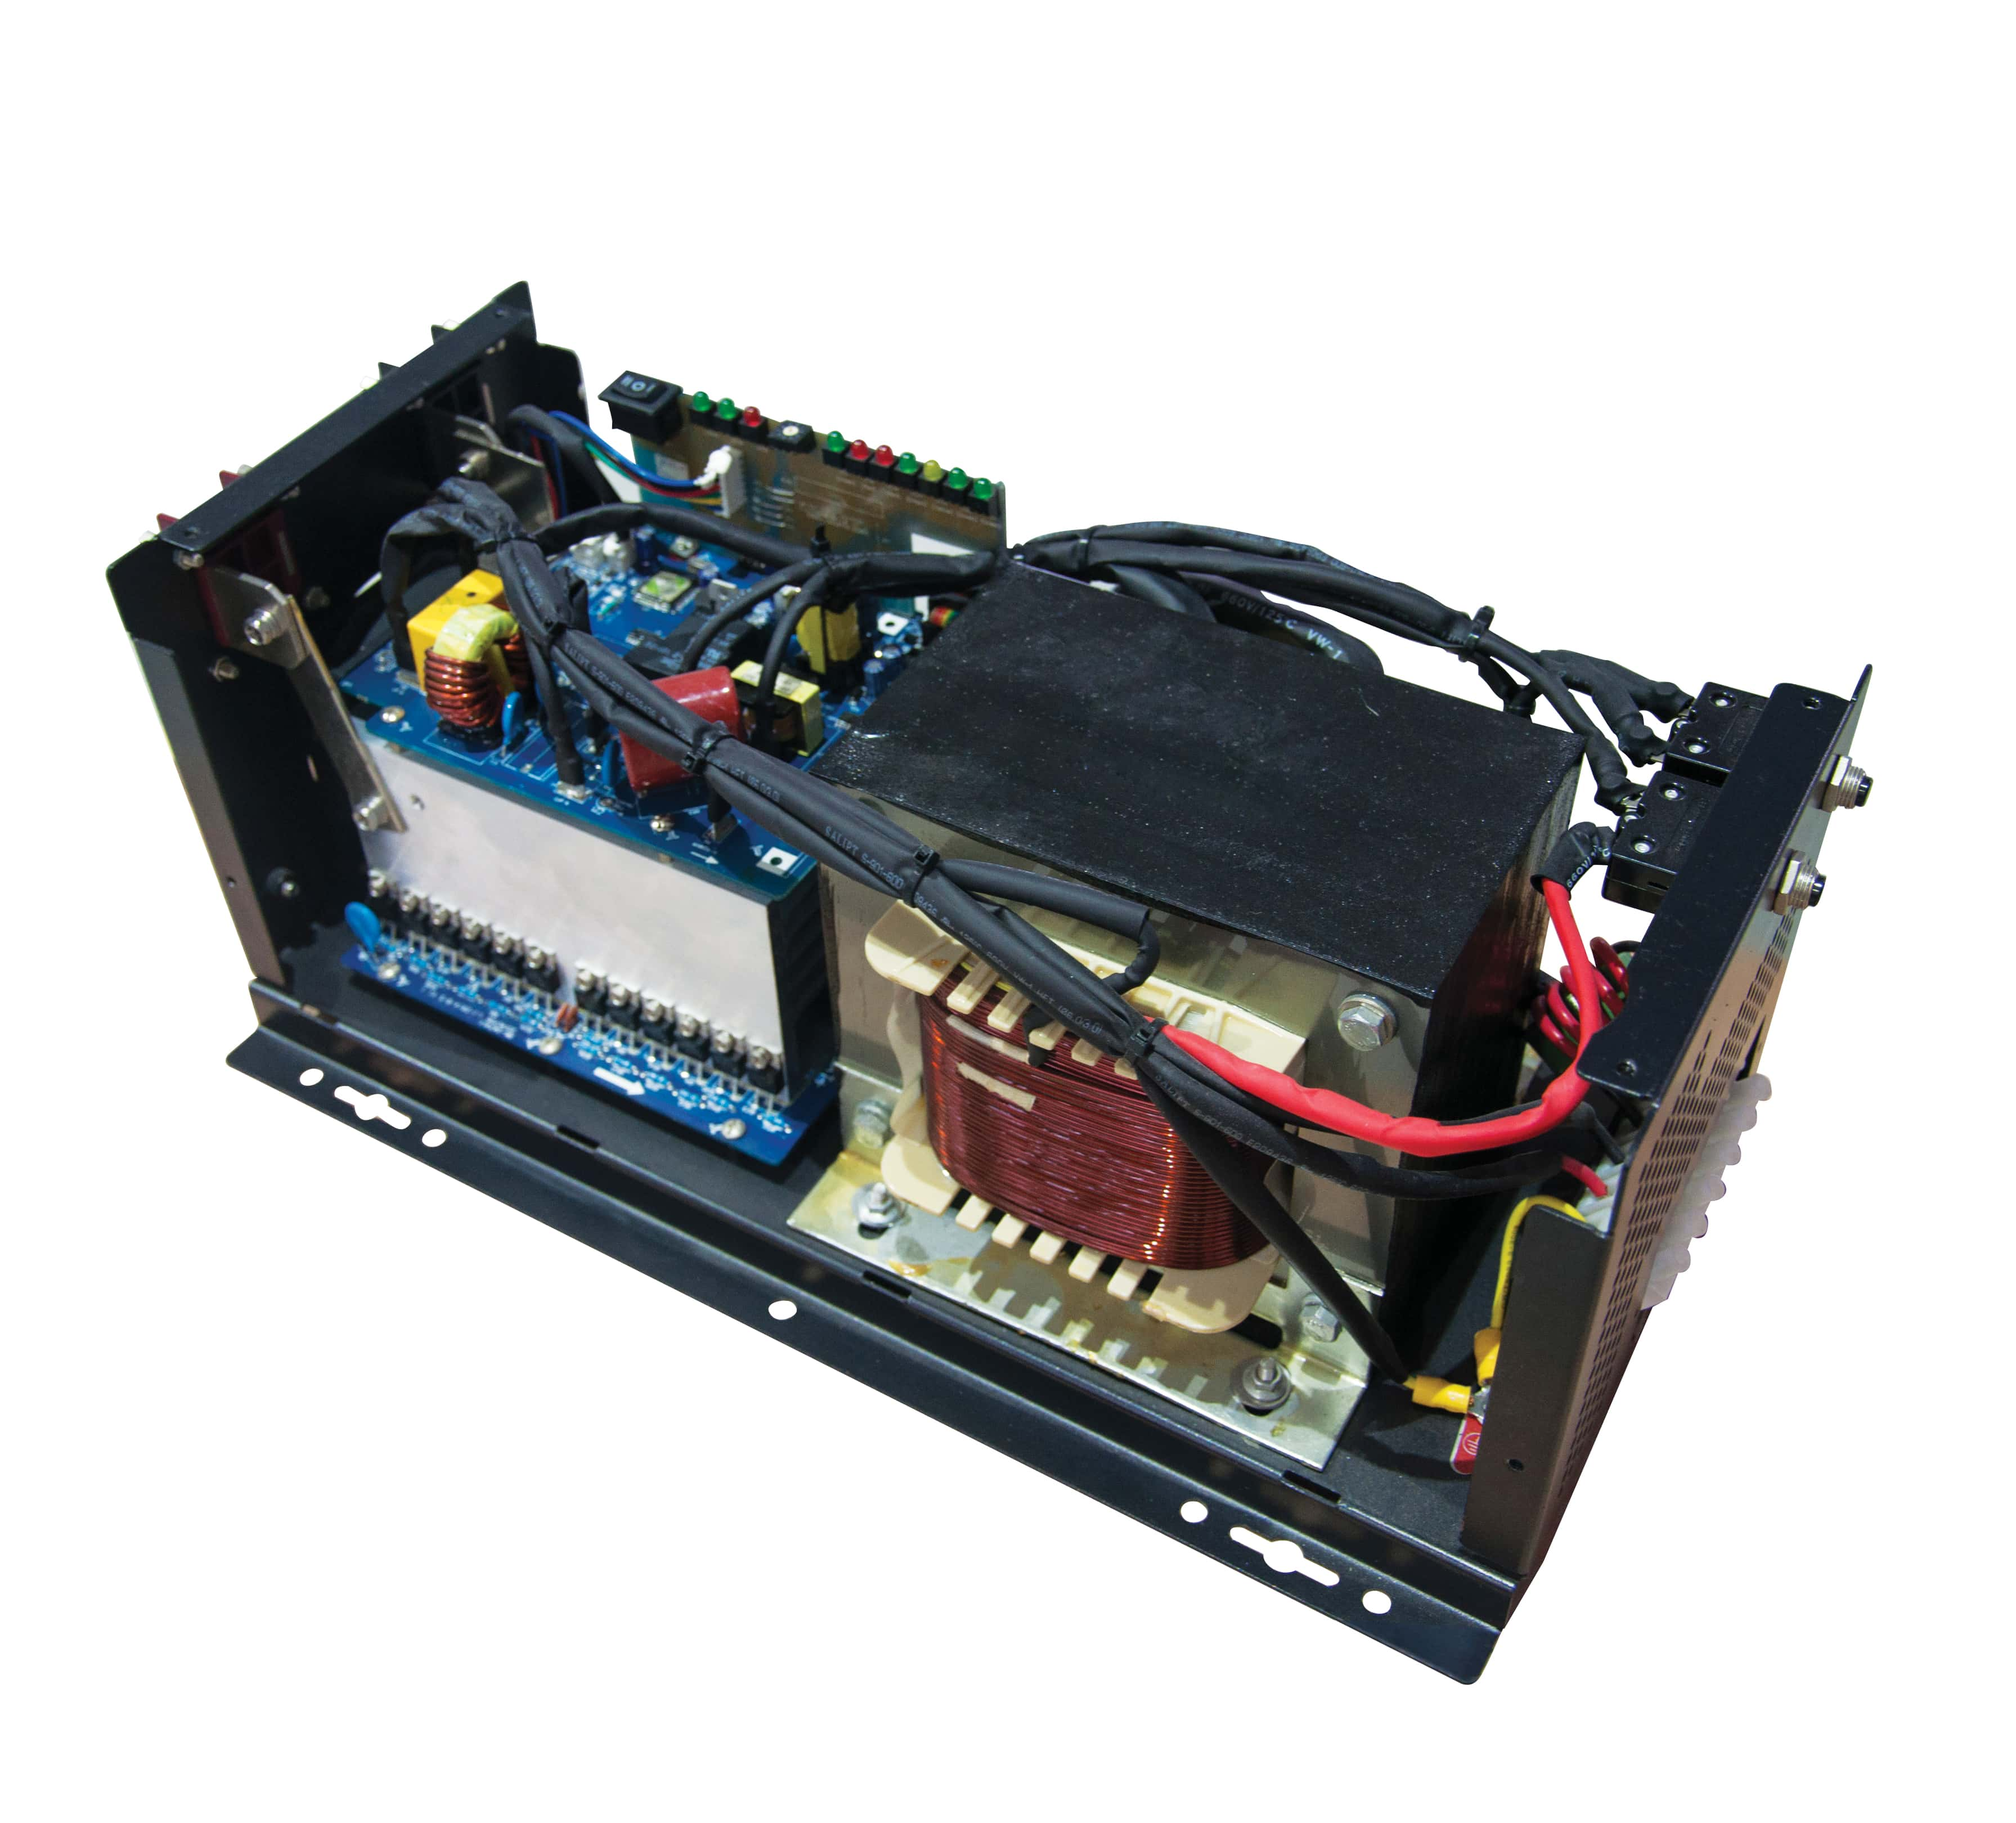 Smps Stands For Switched Mode Power Supply Welcome To Easy 450 W Circuit Diagram Fantastic Motherboard Connection Images Electrical